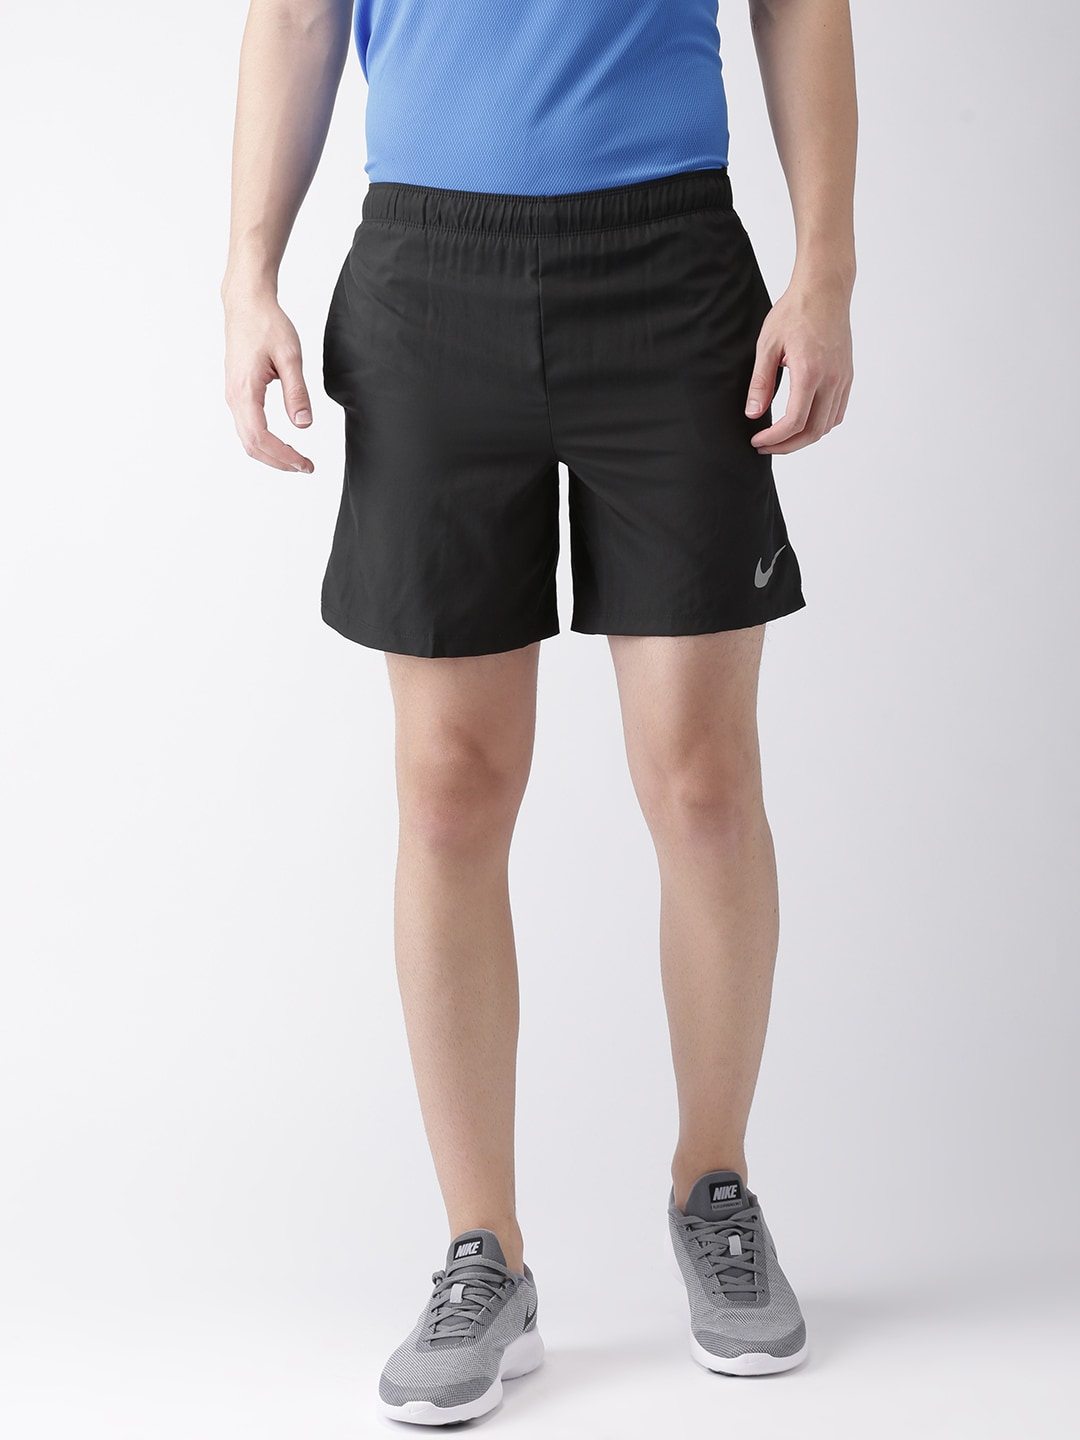 aadd0a936a17 Nike Black Sports Shorts - Buy Nike Black Sports Shorts online in India